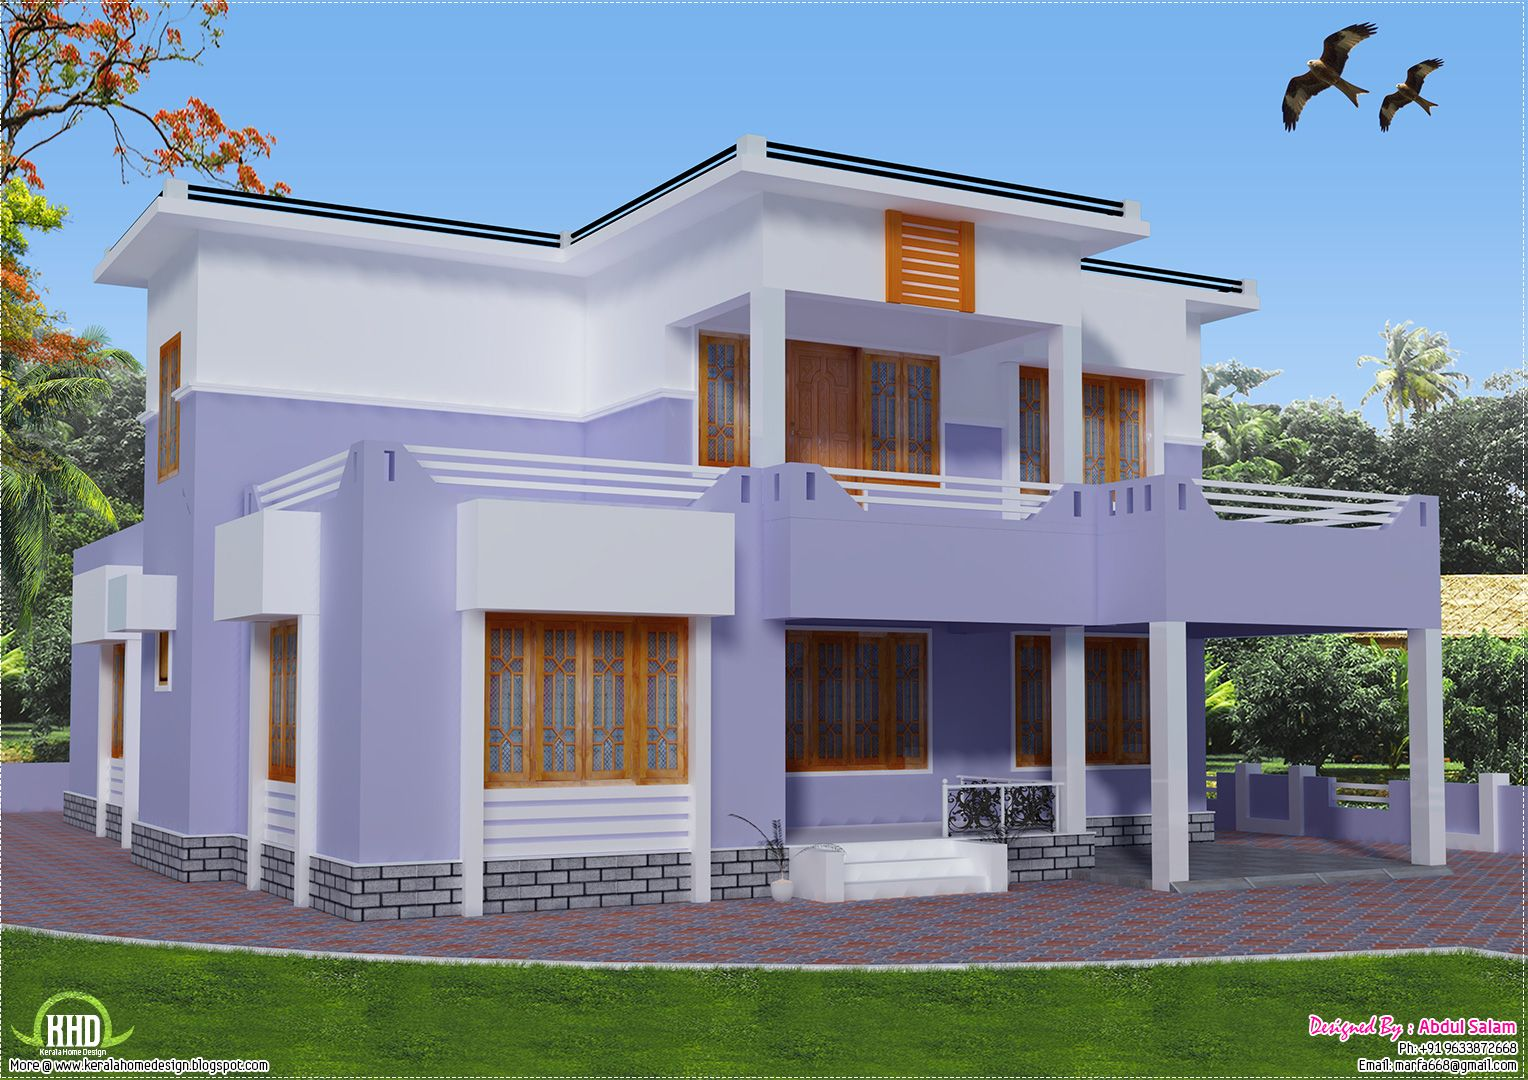 Parapet Wall Designs Google Search House Roof Design Flat Roof House Designs Bungalow House Design